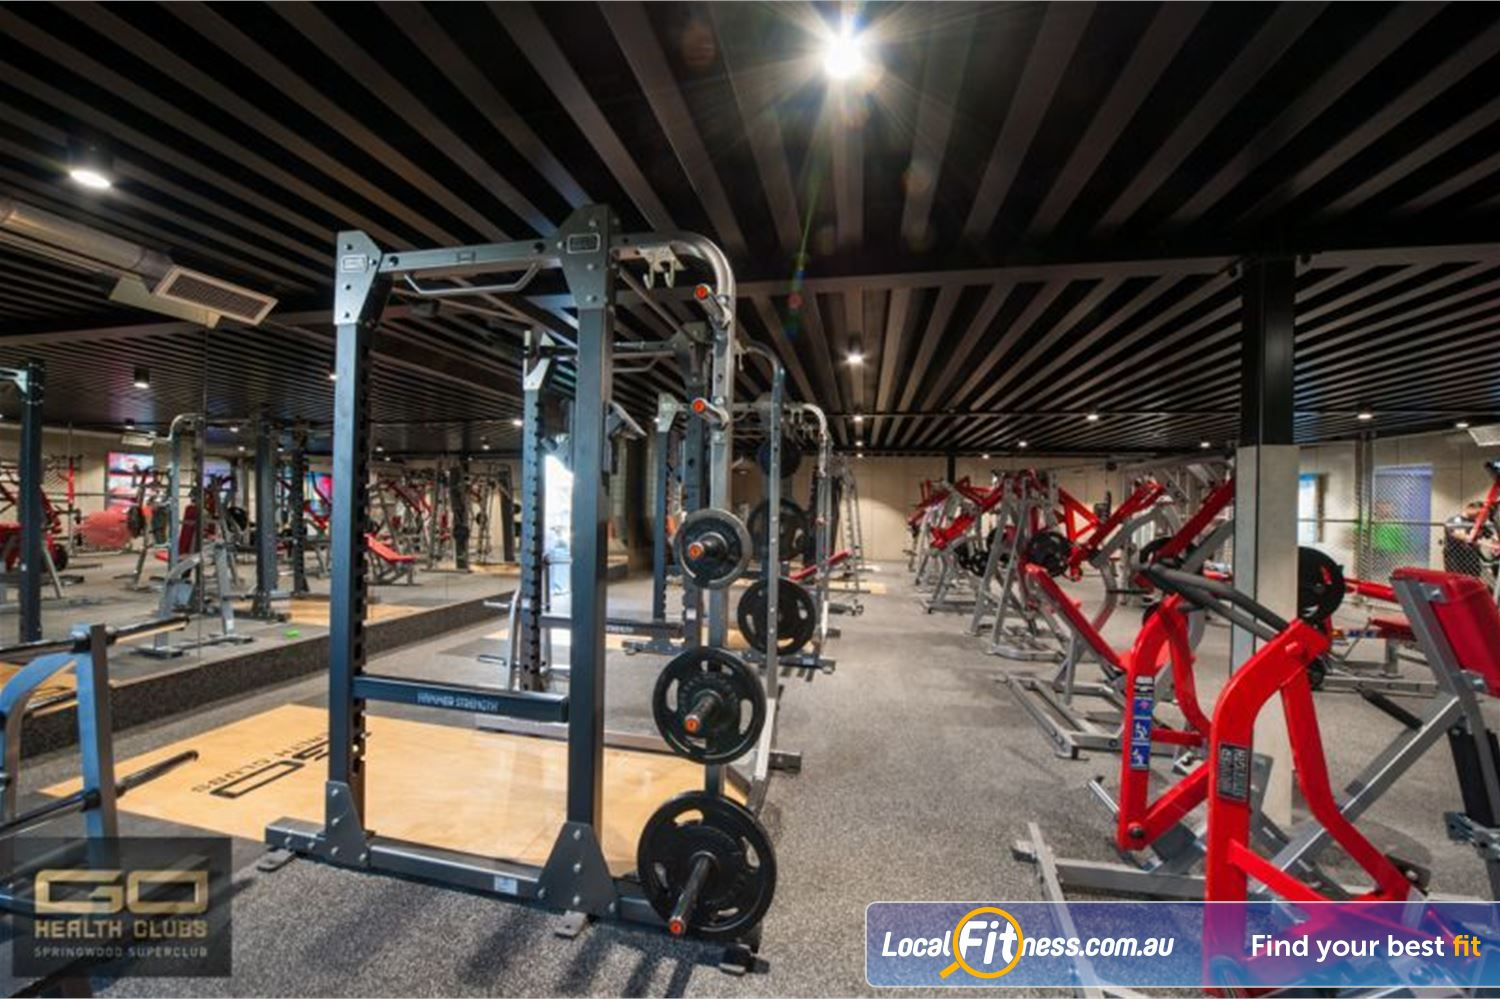 Goodlife Health Clubs Near Chatswood Hills Multiple power rocks and plate loading machine from Hammer Strength.